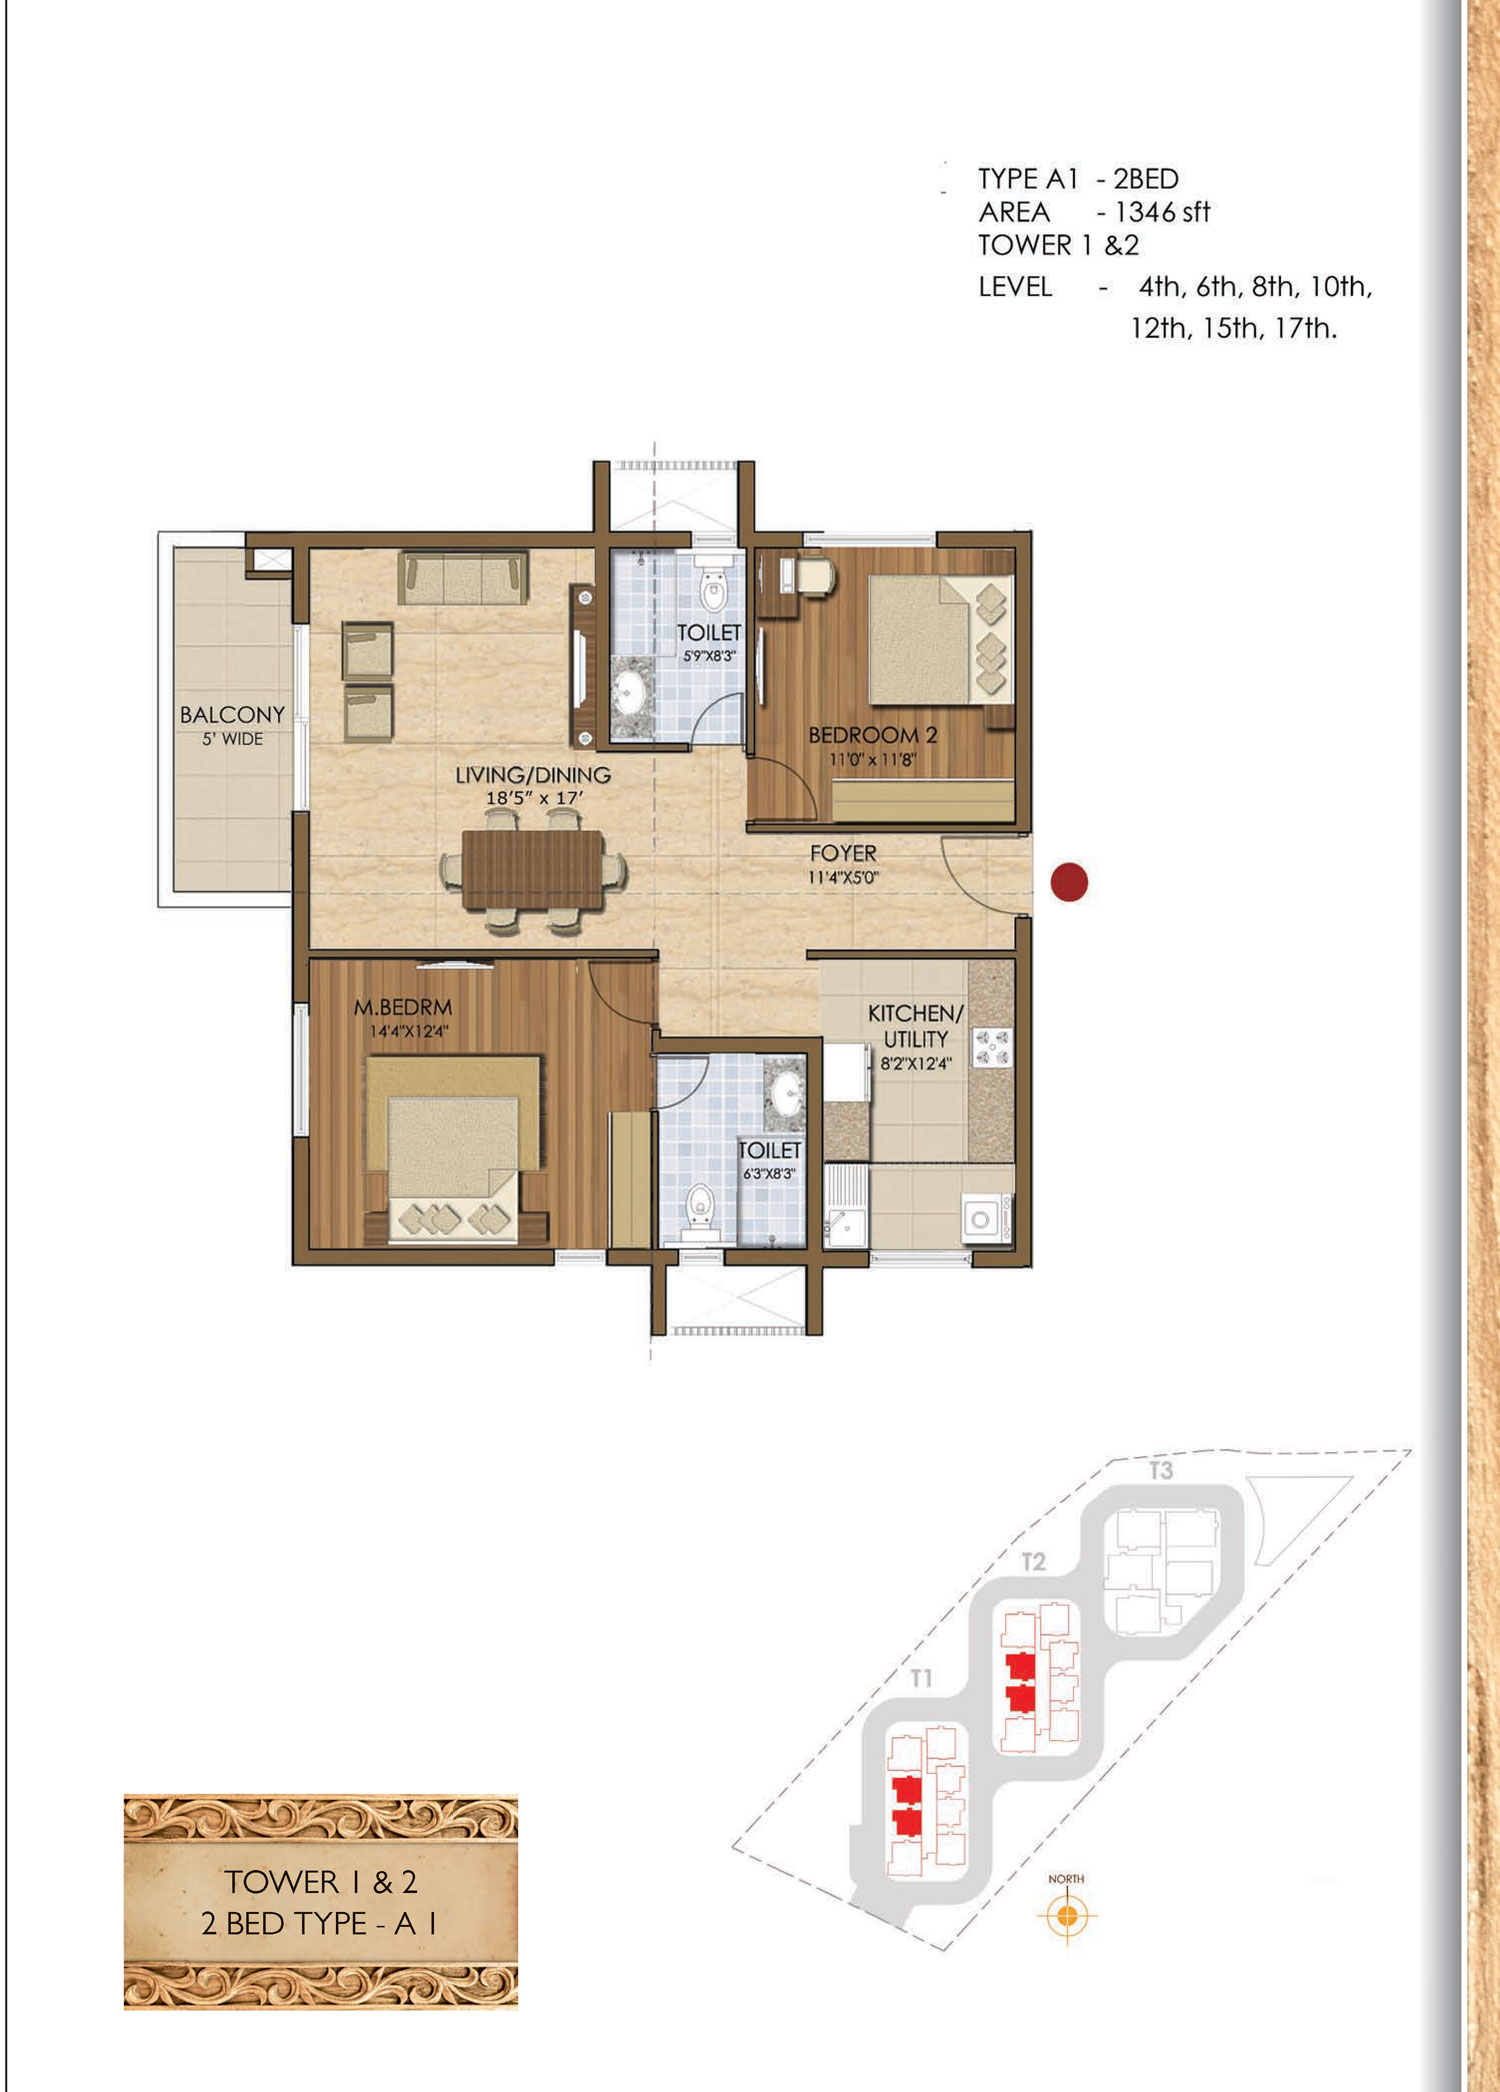 Type A1 - 2 Bed - 1346 Sq Ft